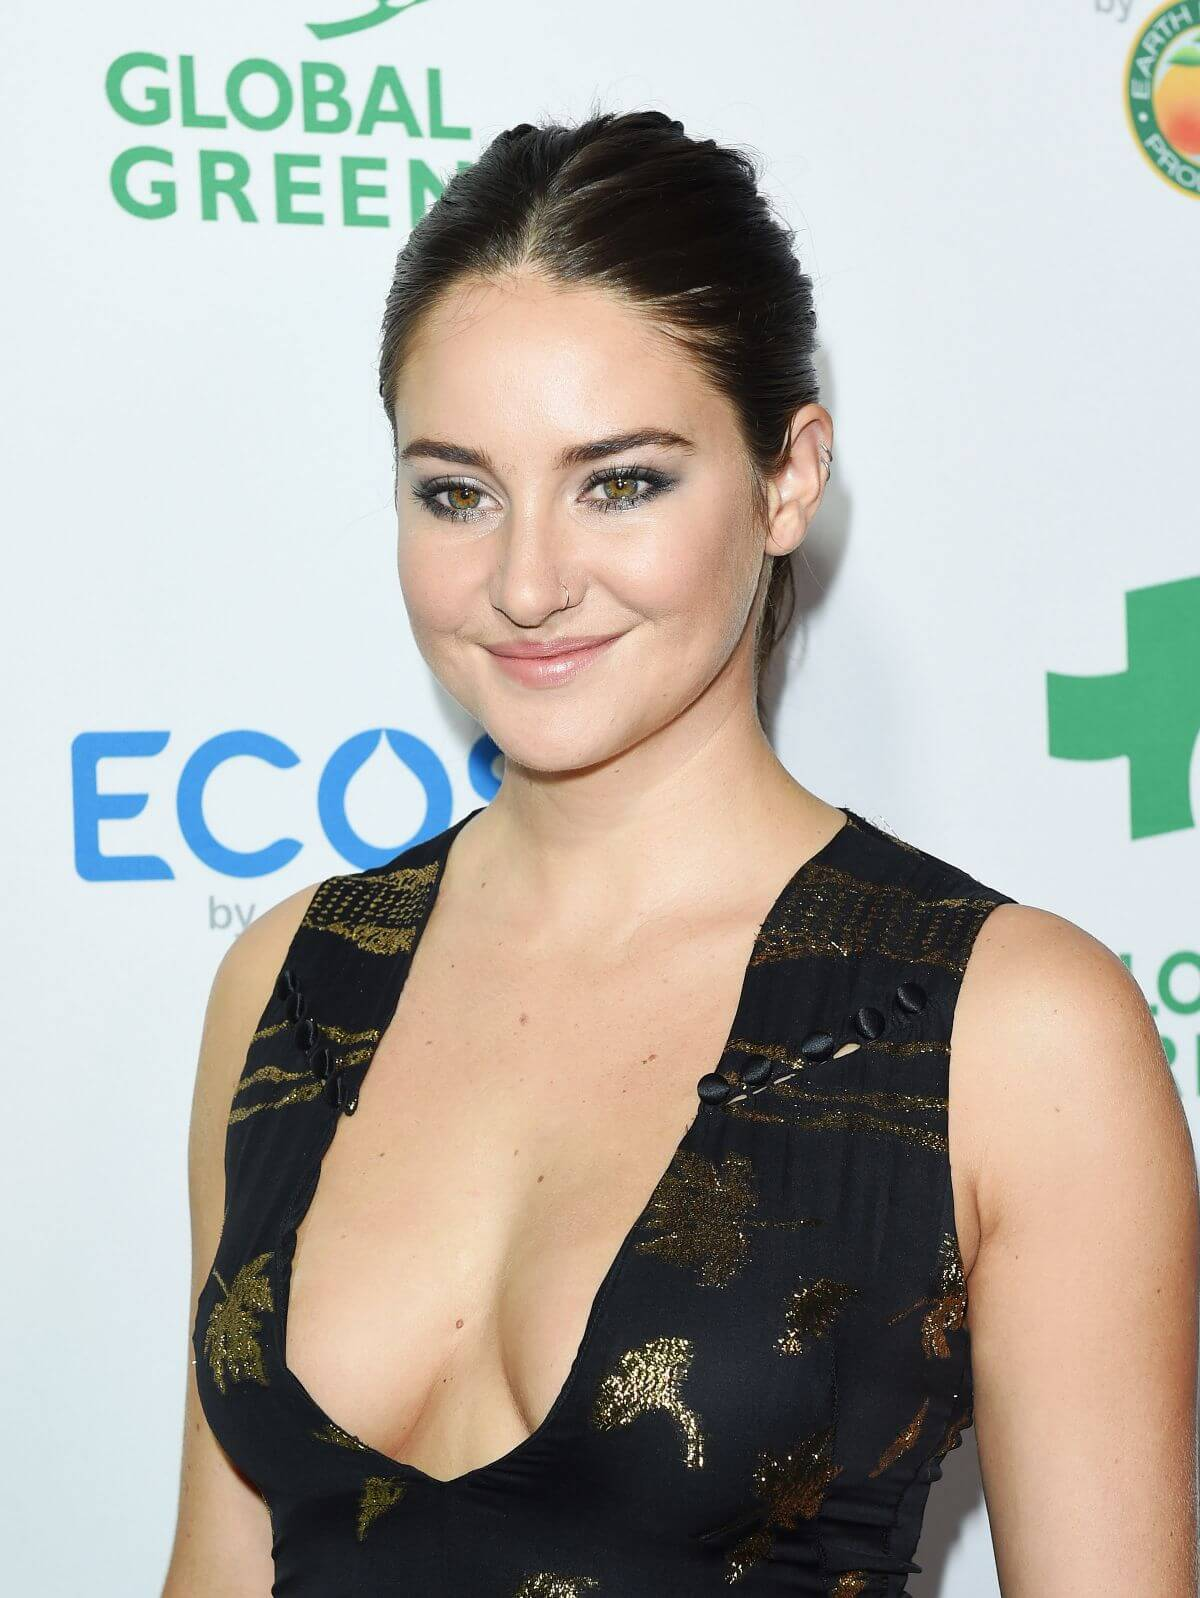 Shailene Woodley Stills at Global Green 20th Anniversary Awards in Los Angeles